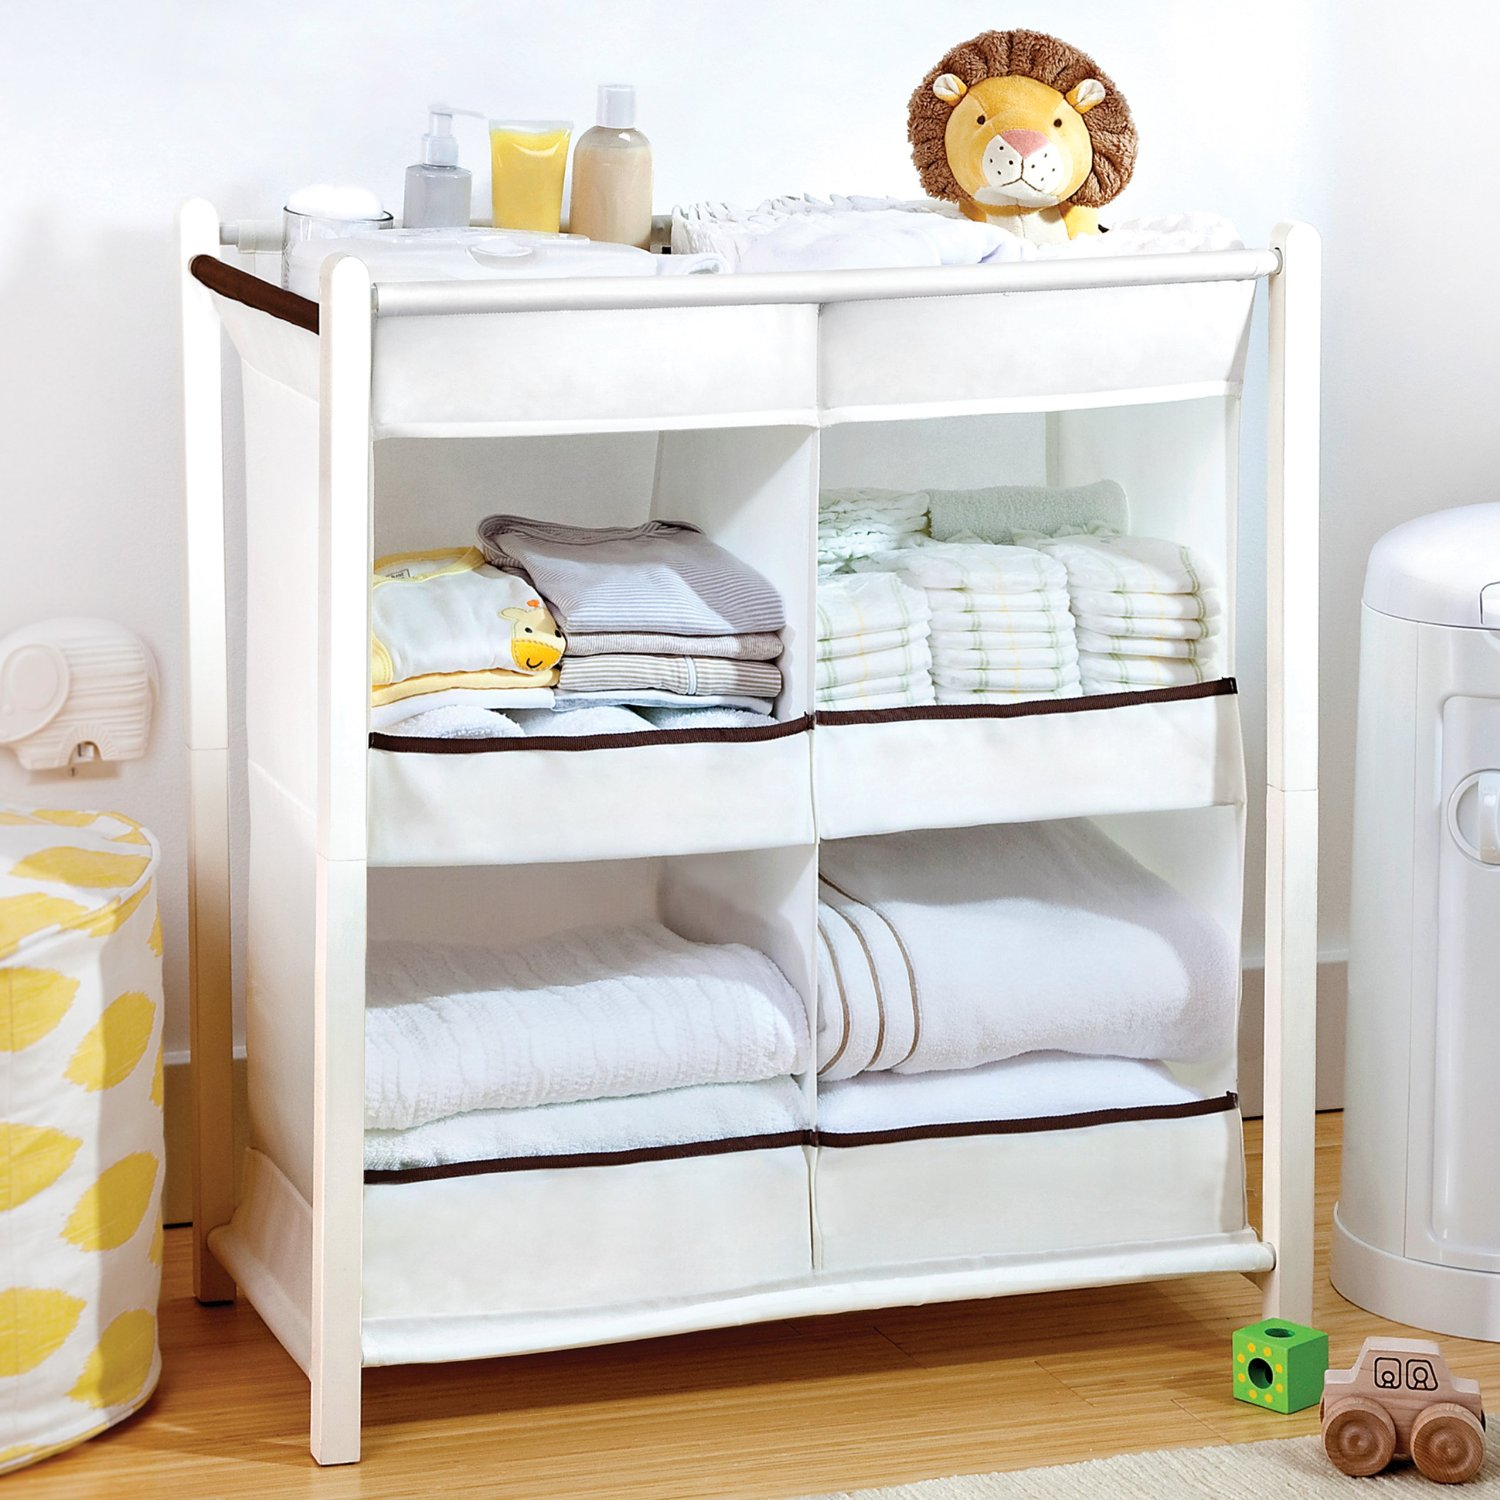 20 Ways to Get the Nursery in Order With Clothing Dividers